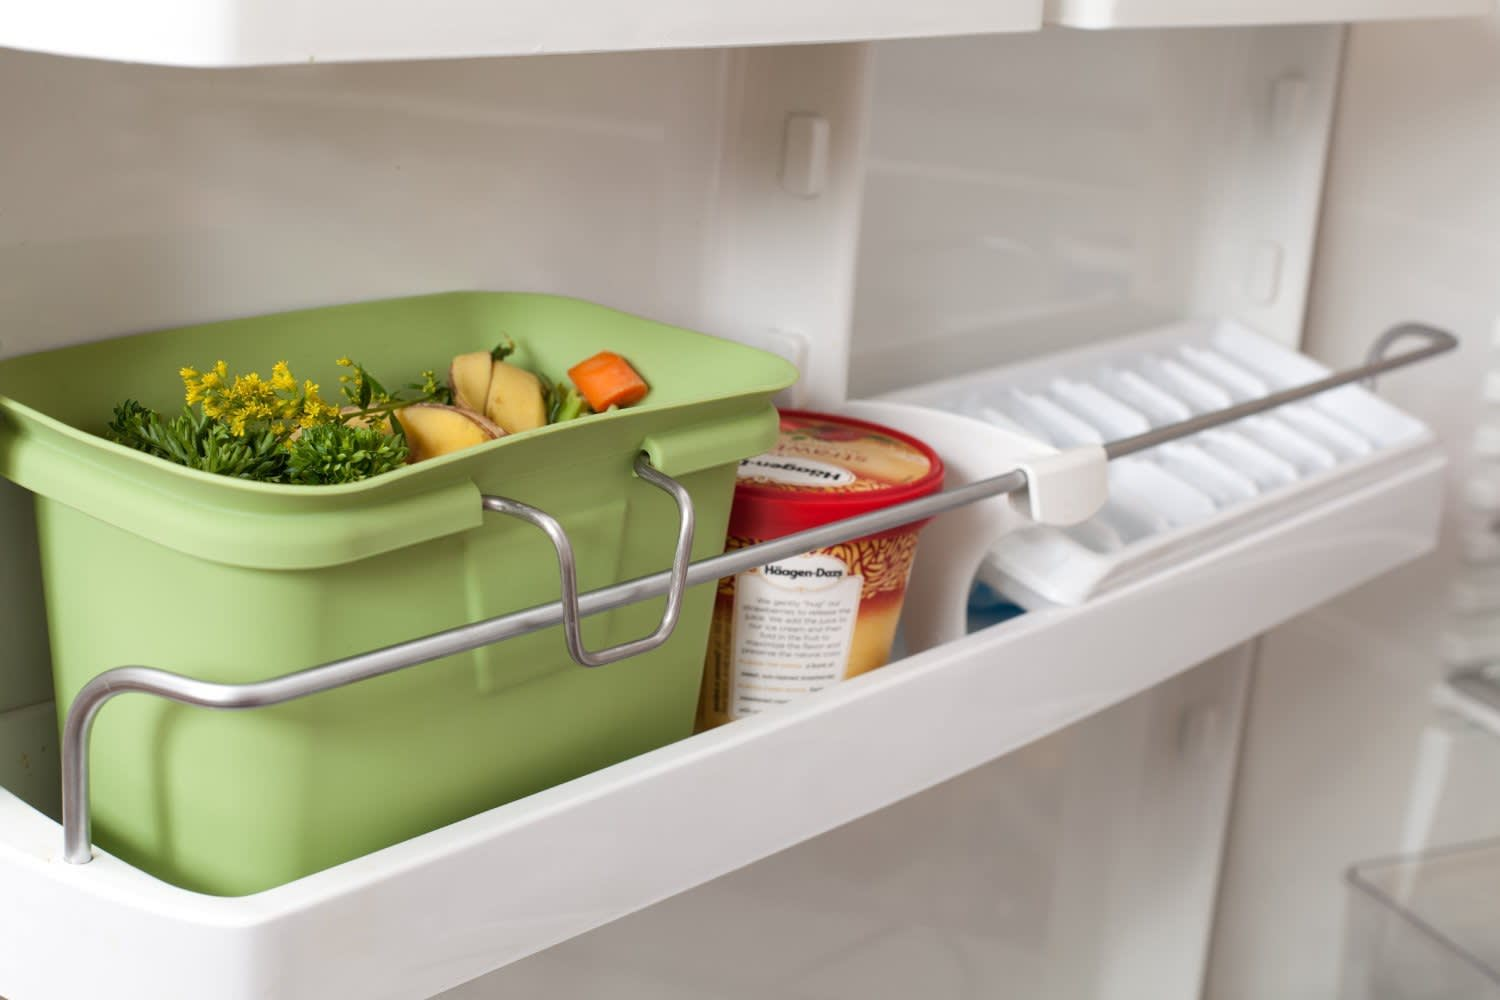 Help Me Find a Better Compost Bin for My Freezer | Kitchn